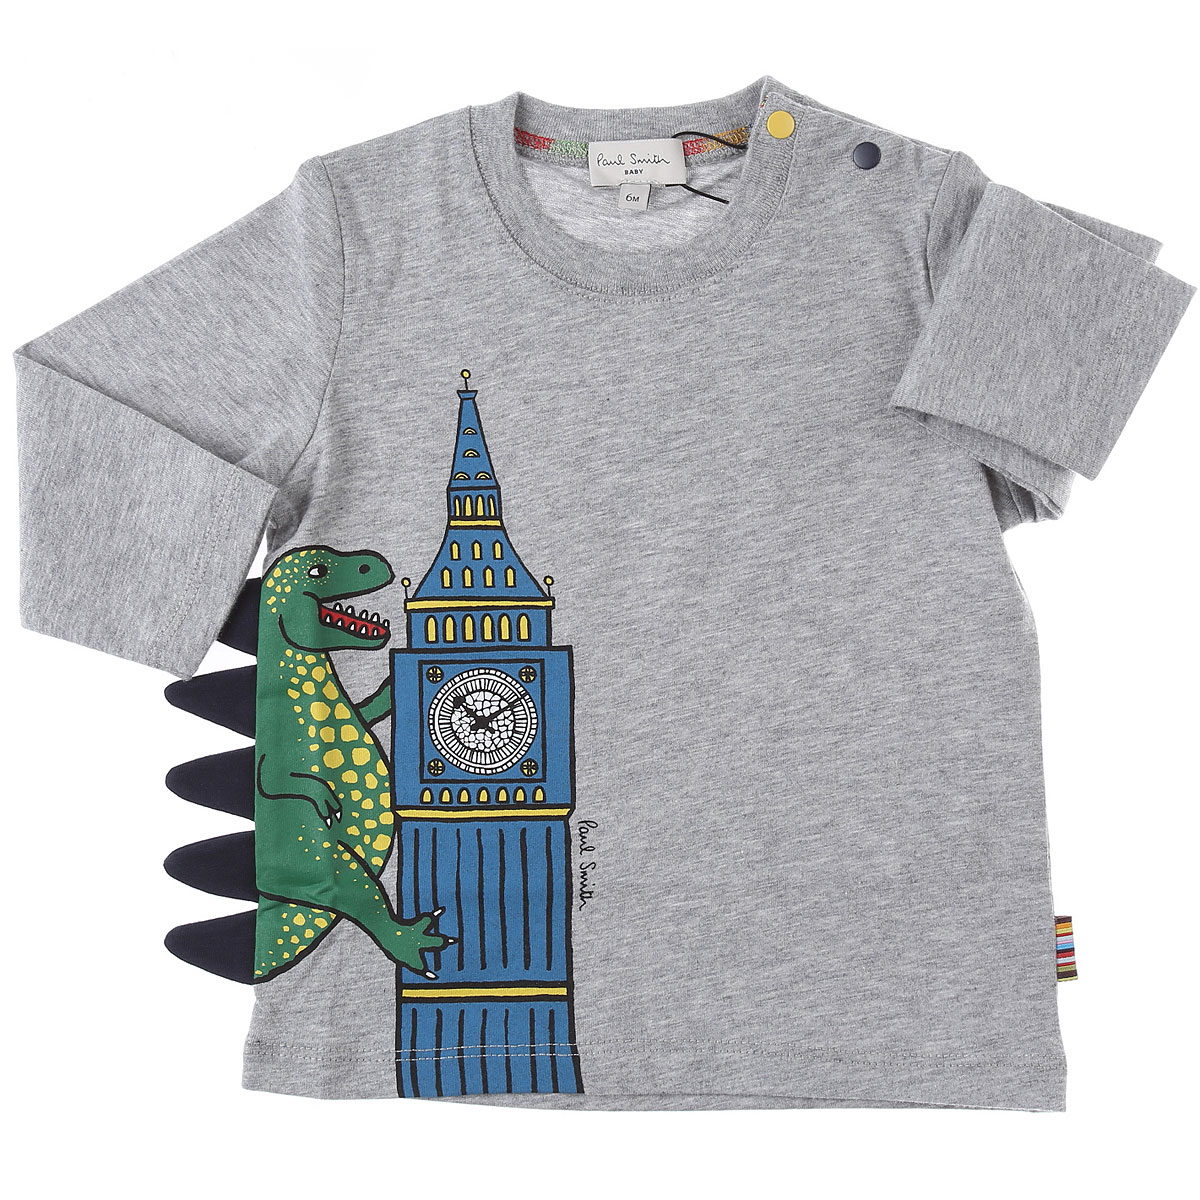 Paul Smith Baby T-Shirt for Boys On Sale, Grey, Cotton, 2019, 12 M 18M 2Y 3Y 6M 9M